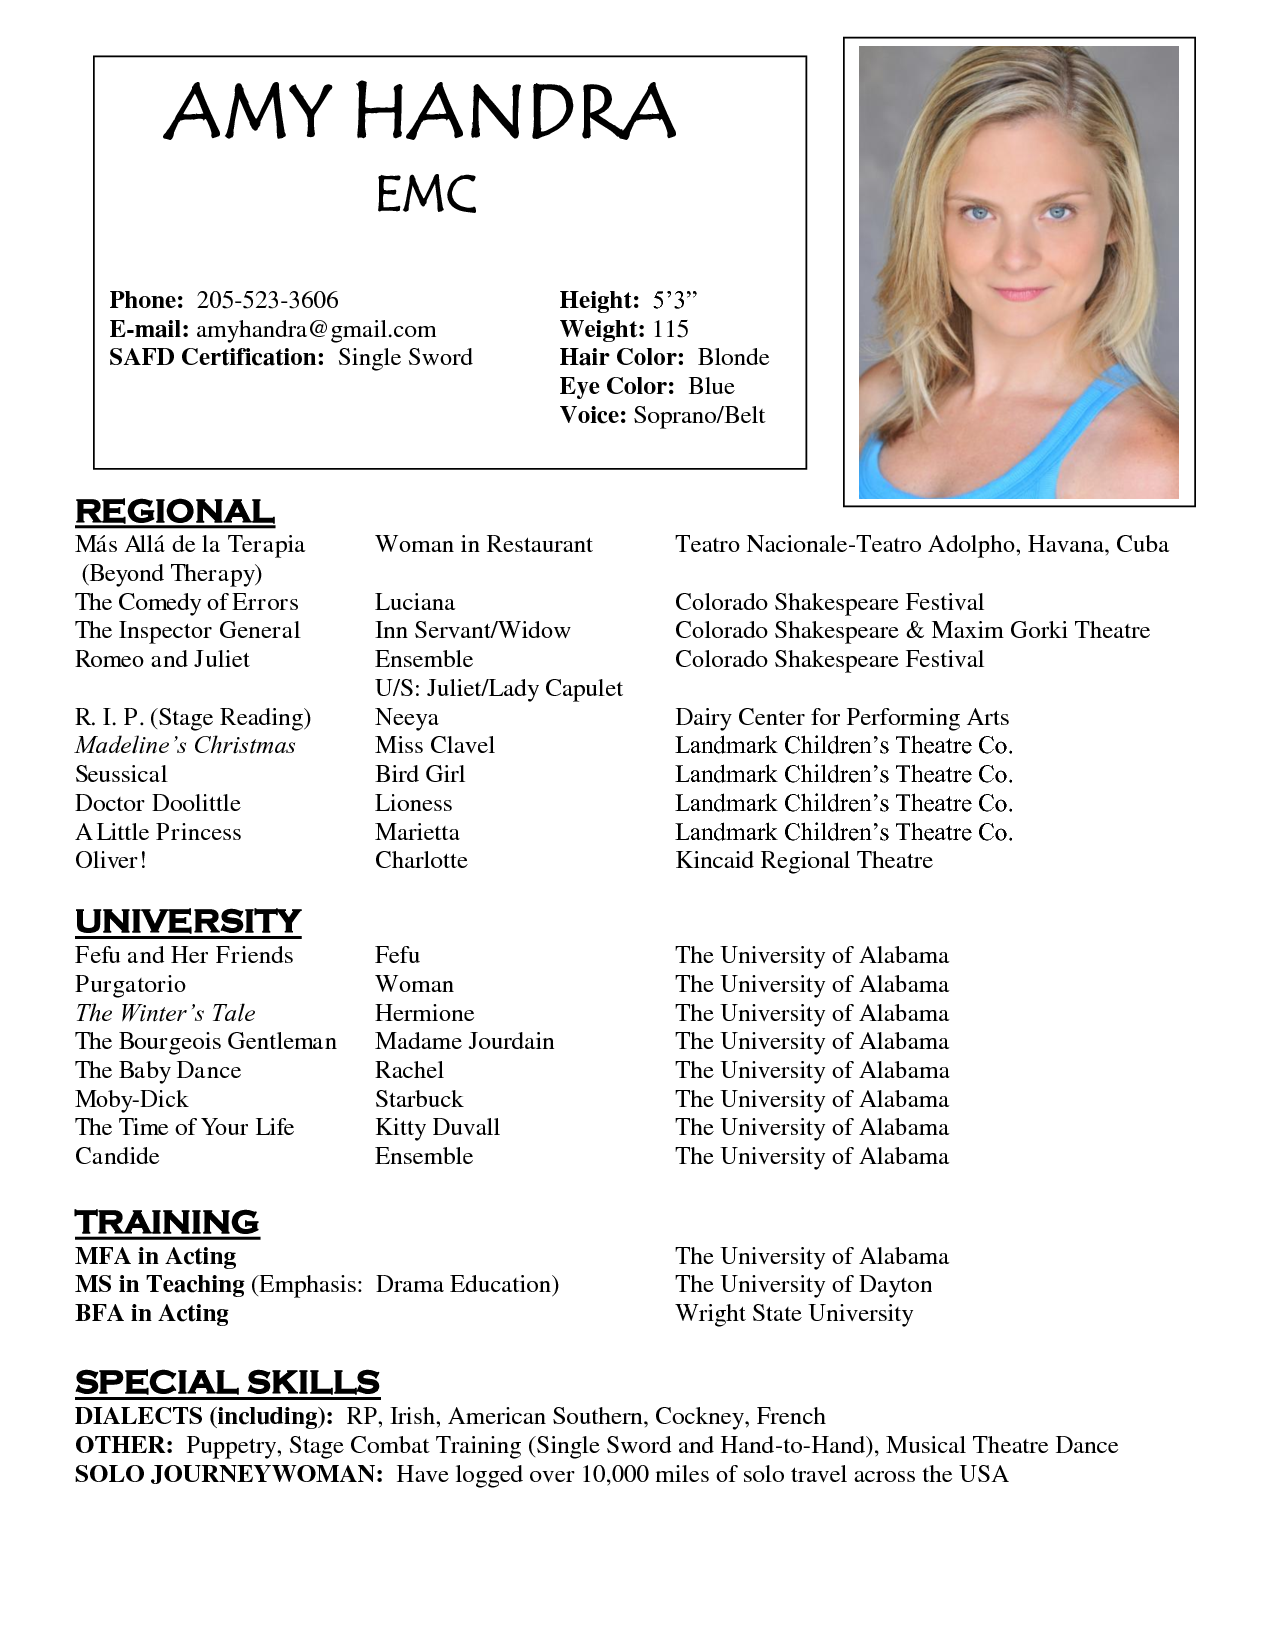 Sample Of Acting Resume Template resumecareerinfo – Acting Resume